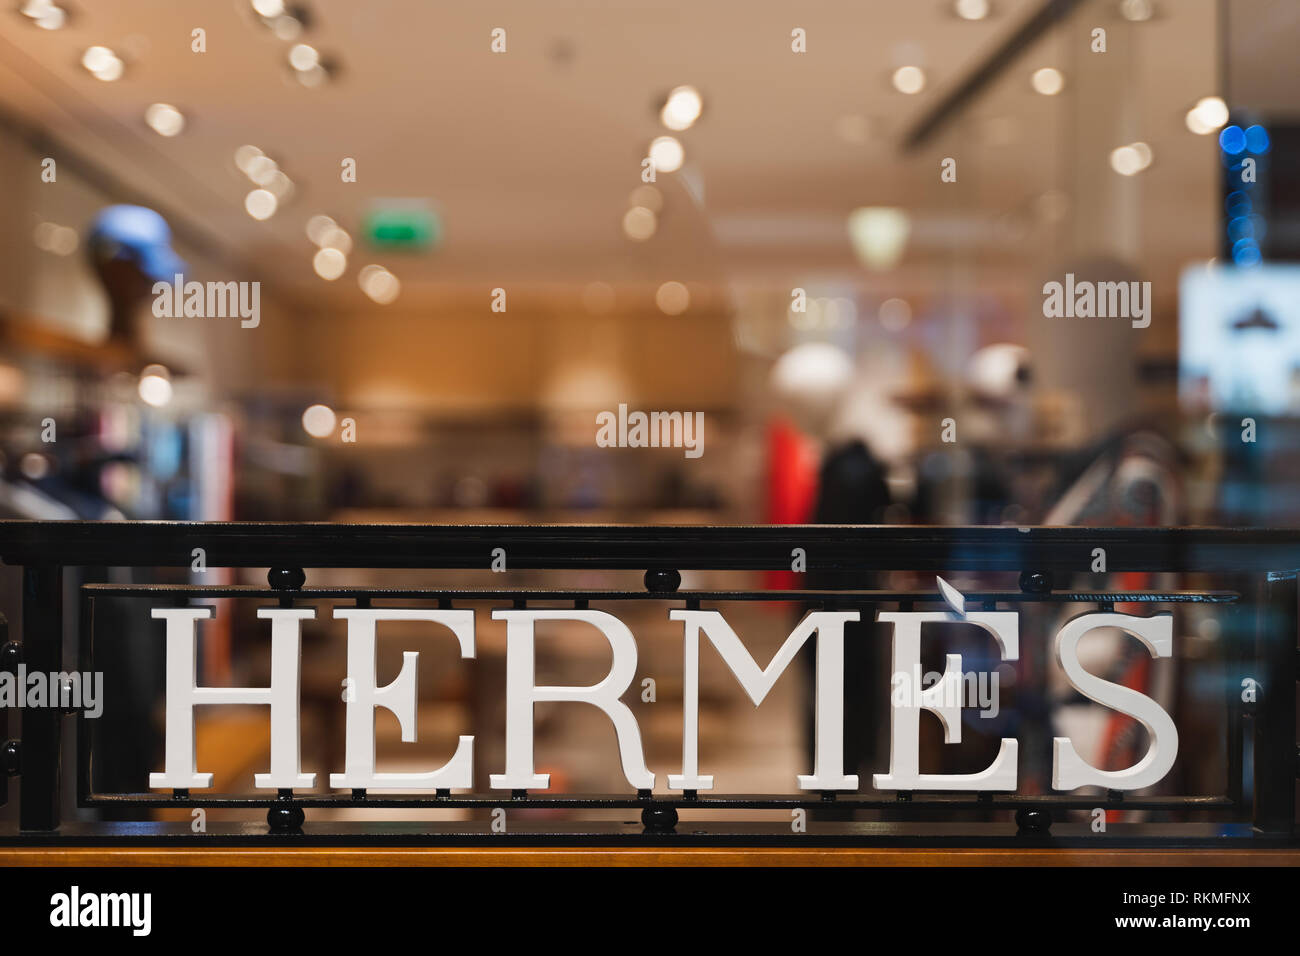 29ca01e2d573 Hermes Bag Stock Photos   Hermes Bag Stock Images - Alamy